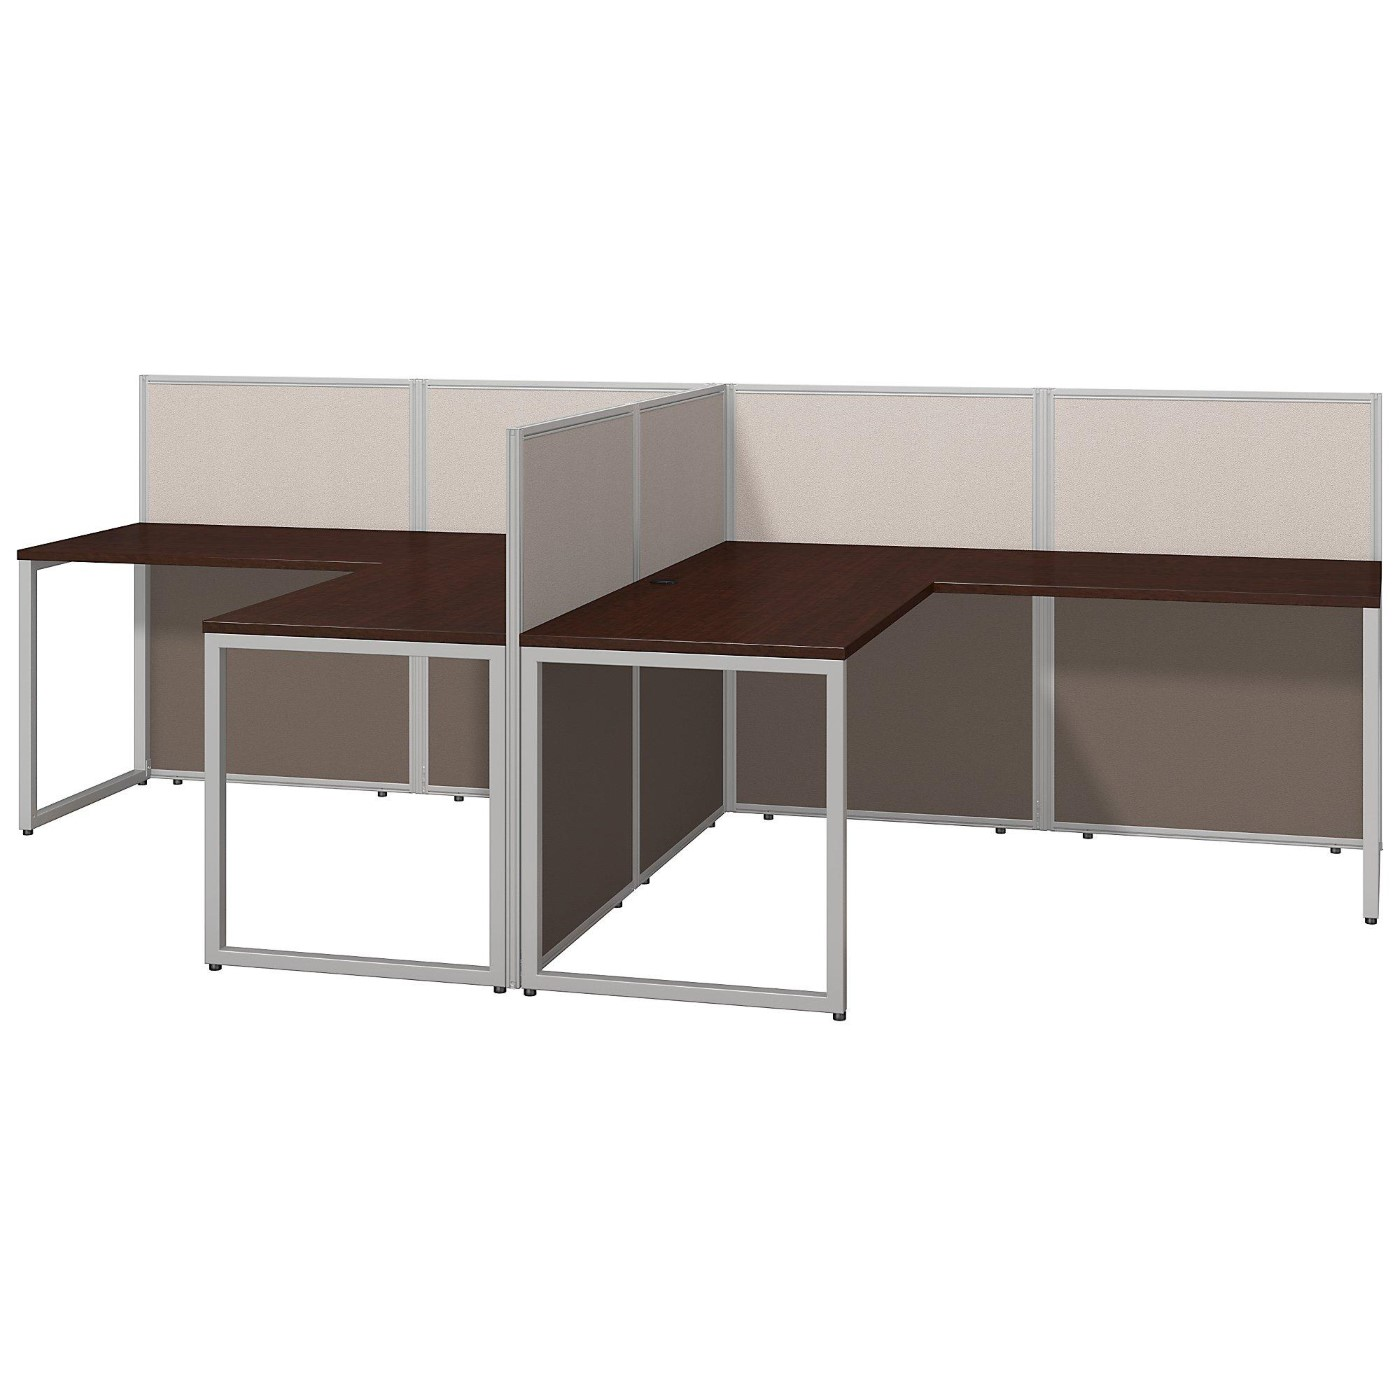 <font color=#c60><b>BUSH BUSINESS FURNITURE EASY OFFICE 60W TWO PERSON L SHAPED DESK OPEN OFFICE. FREE SHIPPING</font></b>